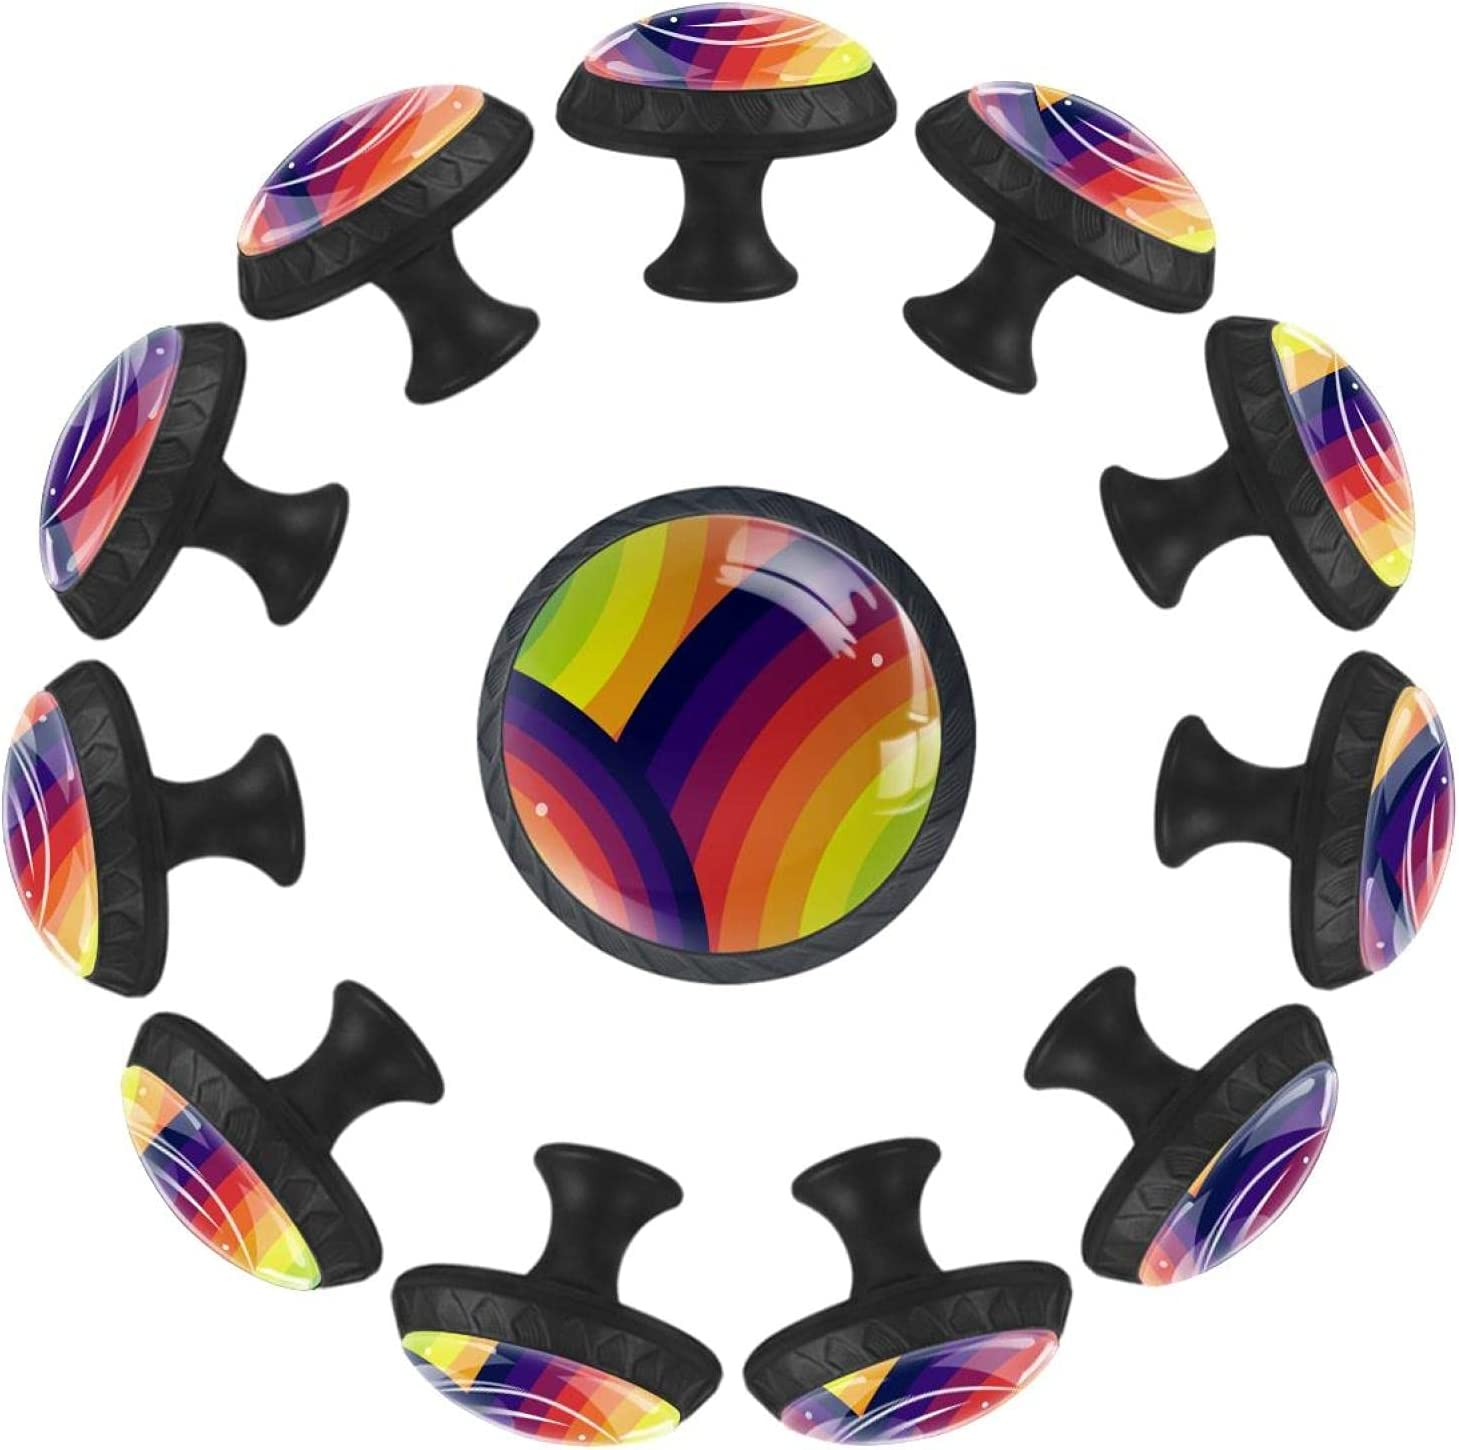 AISSO 12Pcs Color Background New Free Special price for a limited time Shipping Crystal Drawer Round Glass Erg Knob